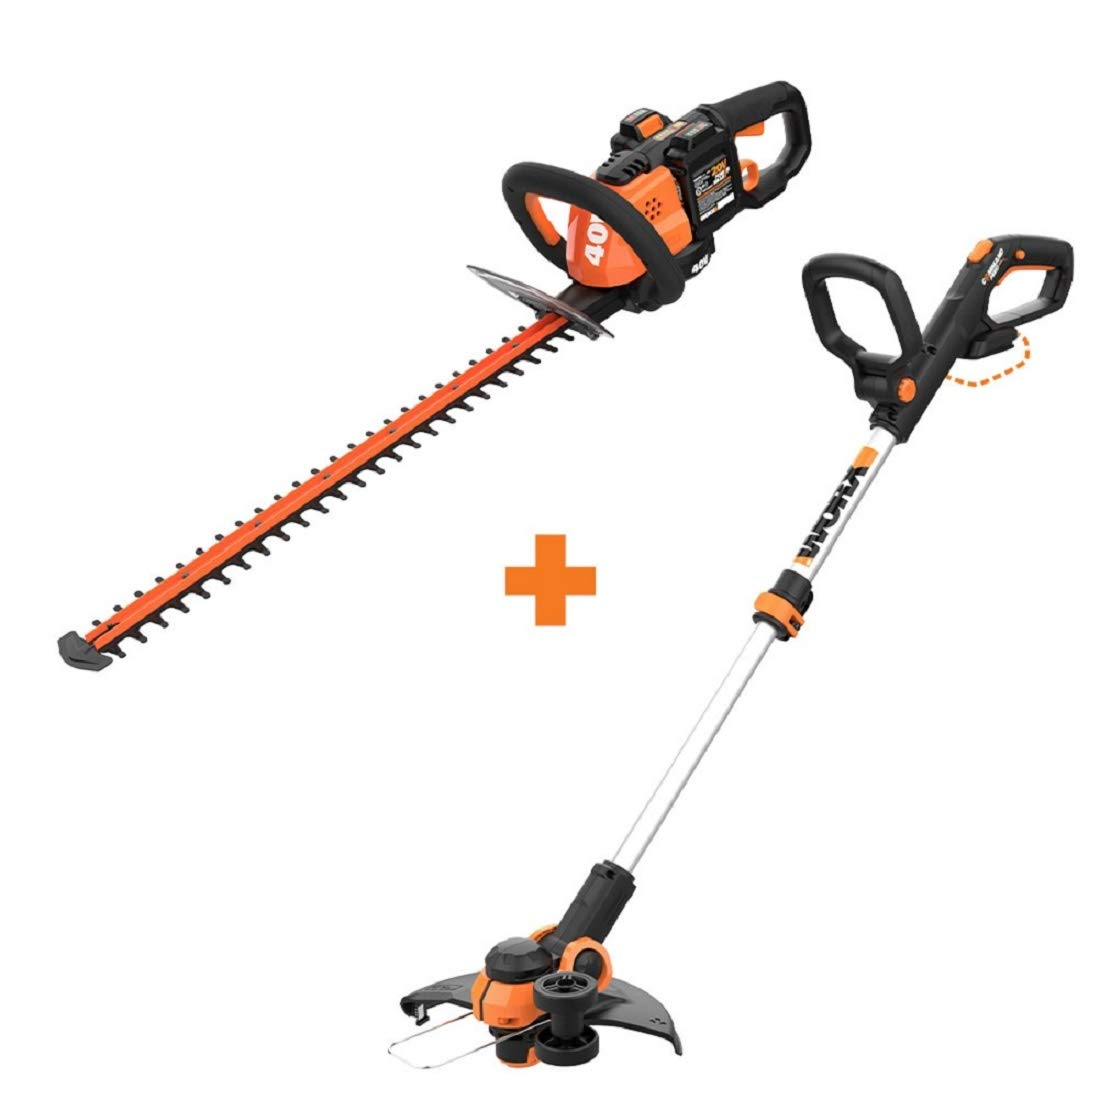 WORX WG284 40V Power Share Cordless 24 Hedge Trimmer w Cordless Grass Trimmer Edger with Command Feed